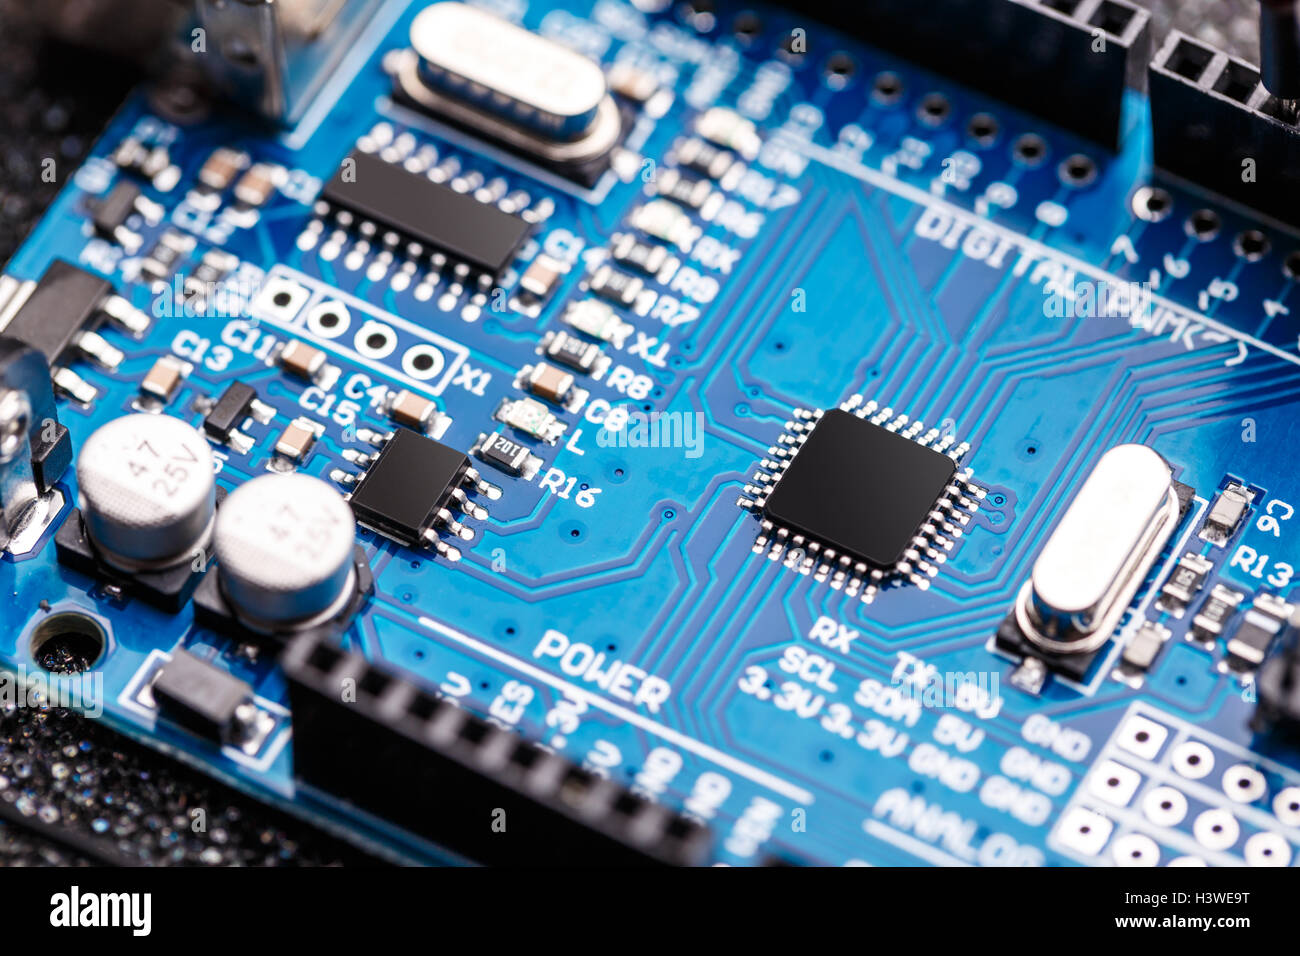 Electronic Circuit Board With Gold Smart Wiring Diagrams Printed Repairs Halbleiter Chip Integriert Mikroprozessor Auf Blaue Testing Military Equipment